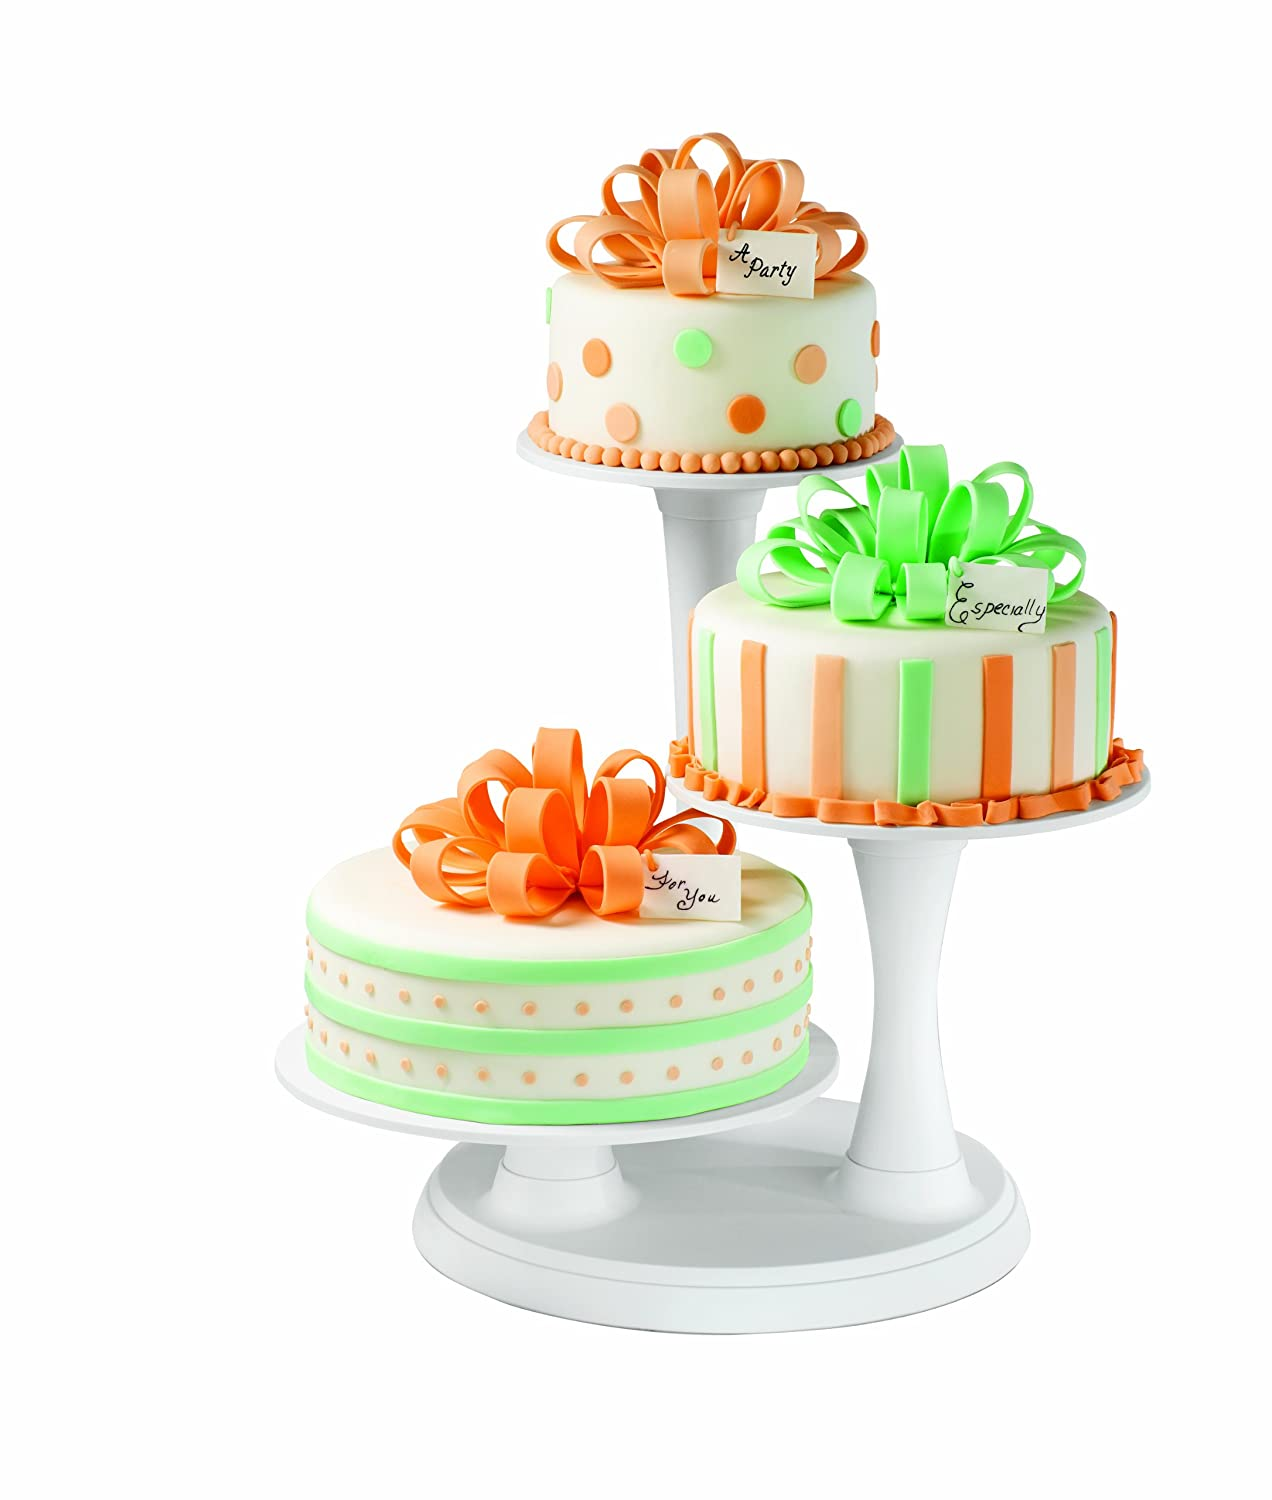 decorative cake stands for wedding cakes 2 wilton 3 tier pillar cakes mini muffins appetizers stand 3451